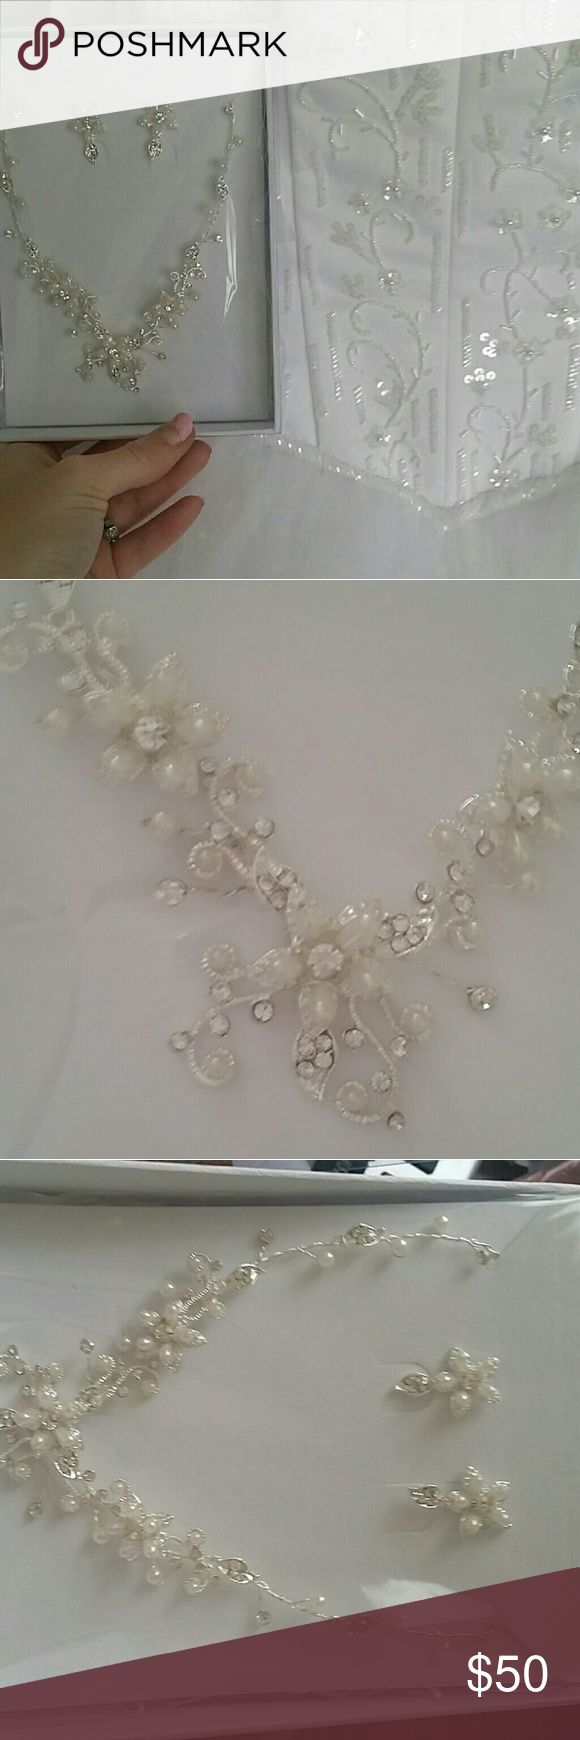 Wedding jewelry set matches veil and dress.. Wedding jewelry set matches veil and dress that's in my closet also for sale. Brand new never even opened out of package. David's Bridal Jewelry